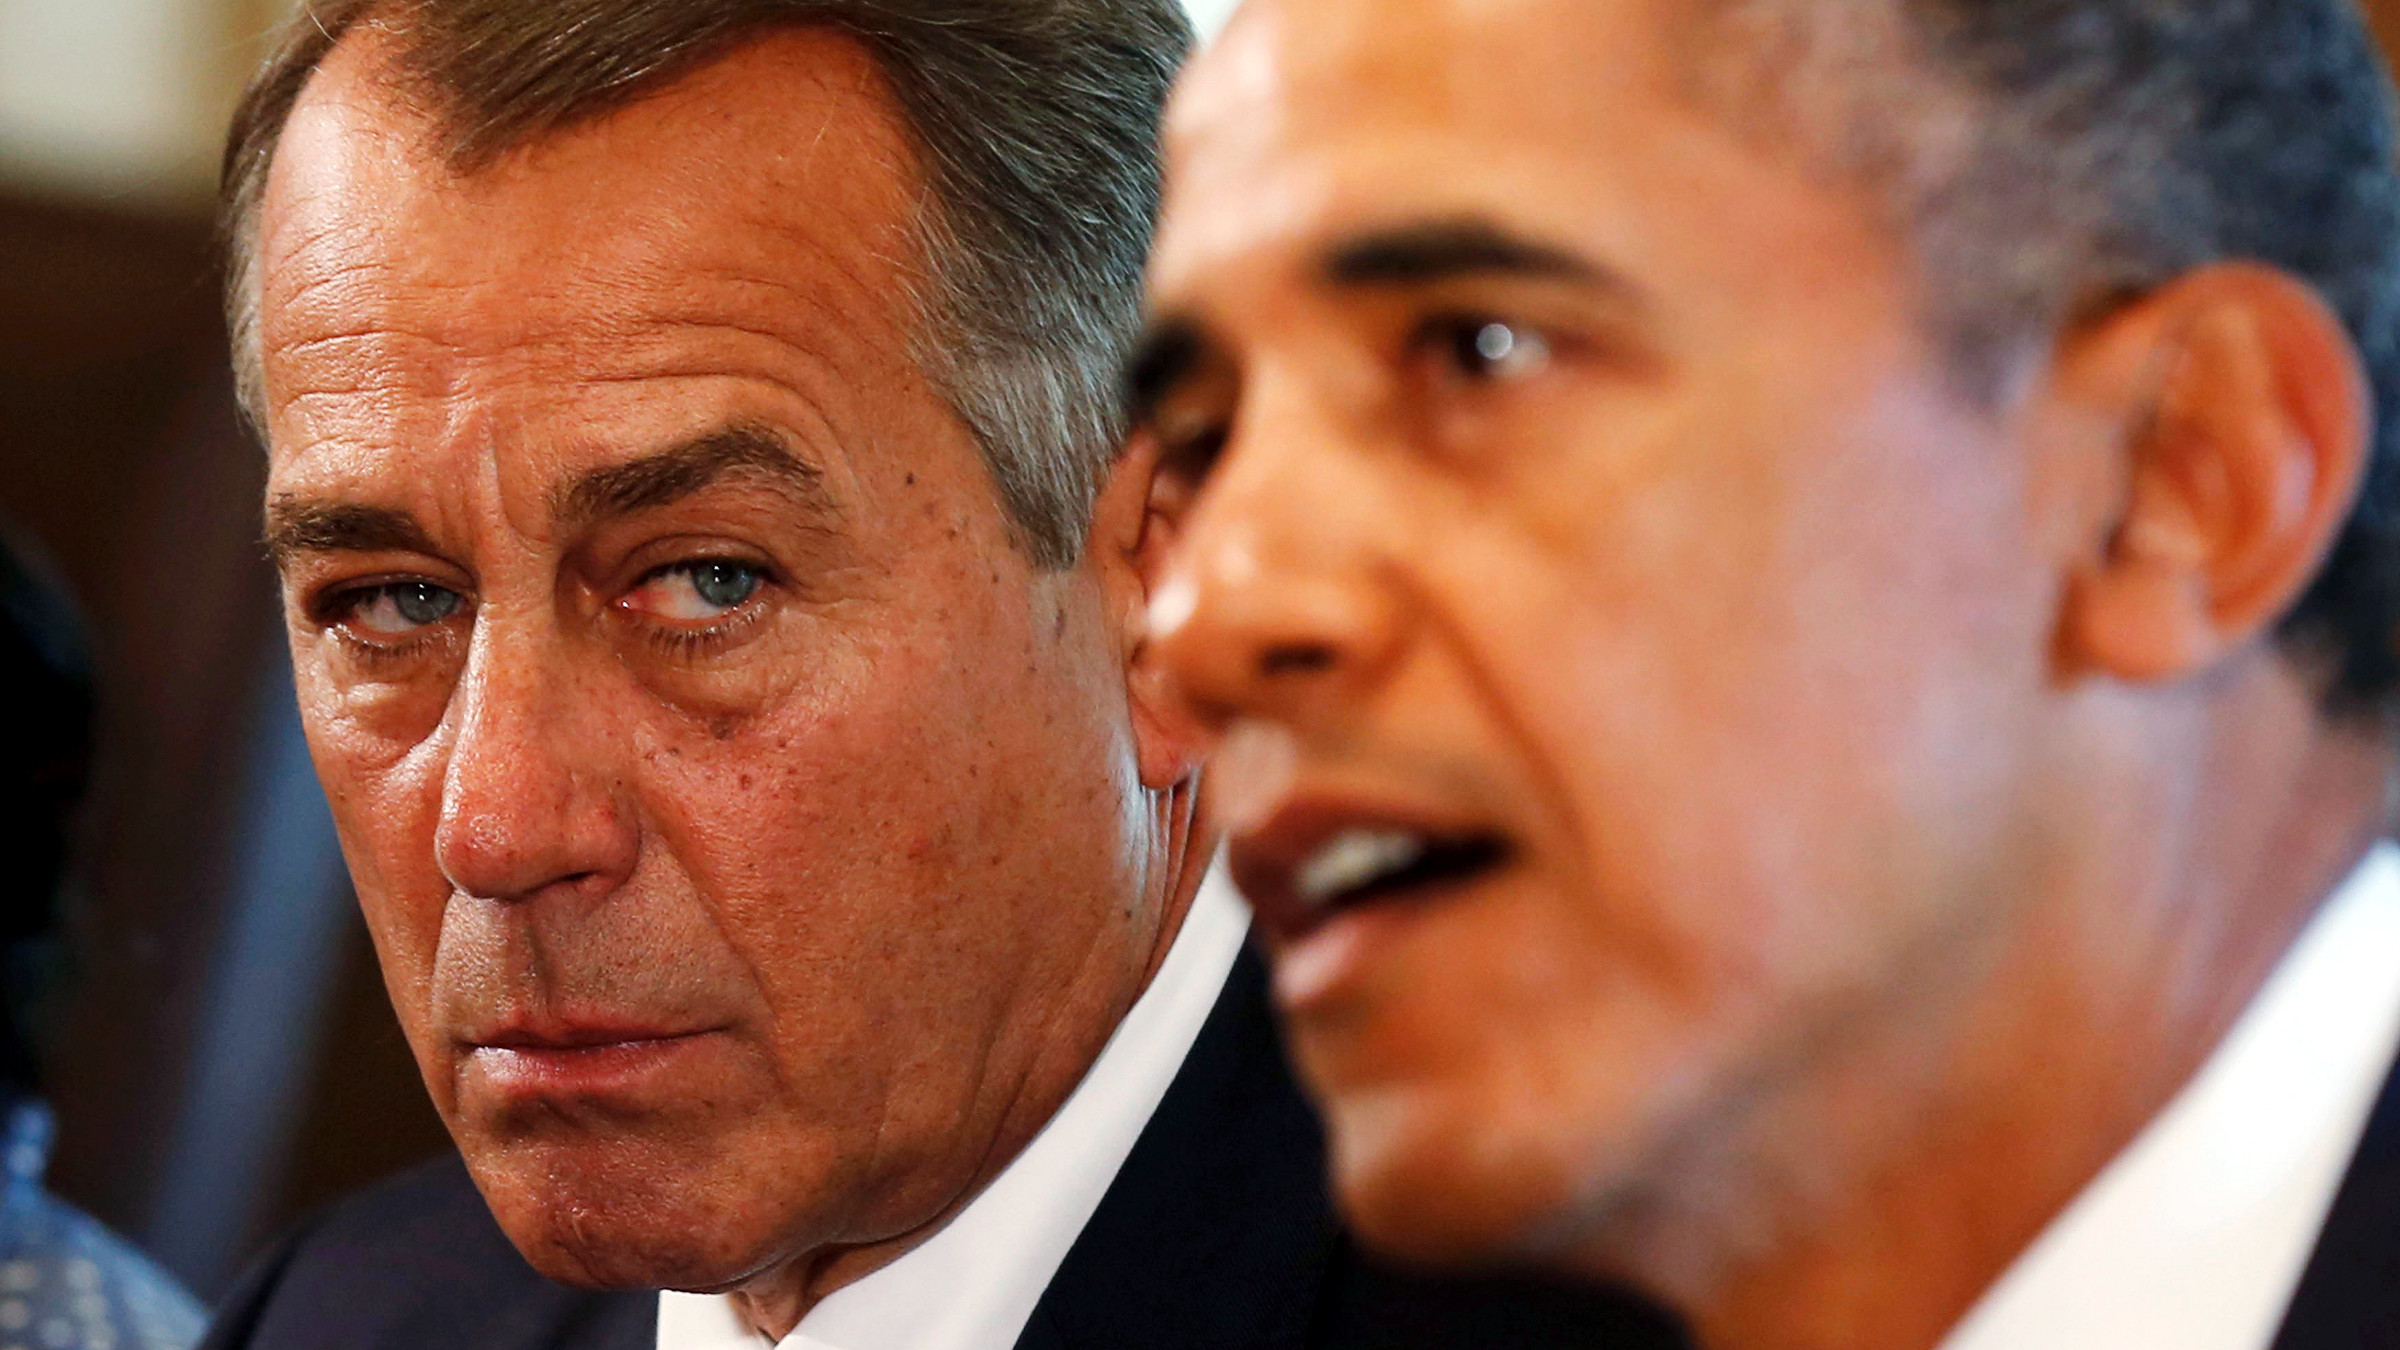 Speaker of the House John Boehner (R-OH) (L) listens to U.S. President Barack Obama during a meeting with bipartisan Congressional leaders in the Cabinet Room at the White House in Washington to discuss a military response to Syria, September 3, 2013. Obama said on Tuesday he was confident that Congress would vote in favor of U.S. military action in Syria and said the United States had a broader plan to help rebels defeat President Bashar al-Assad's forces.